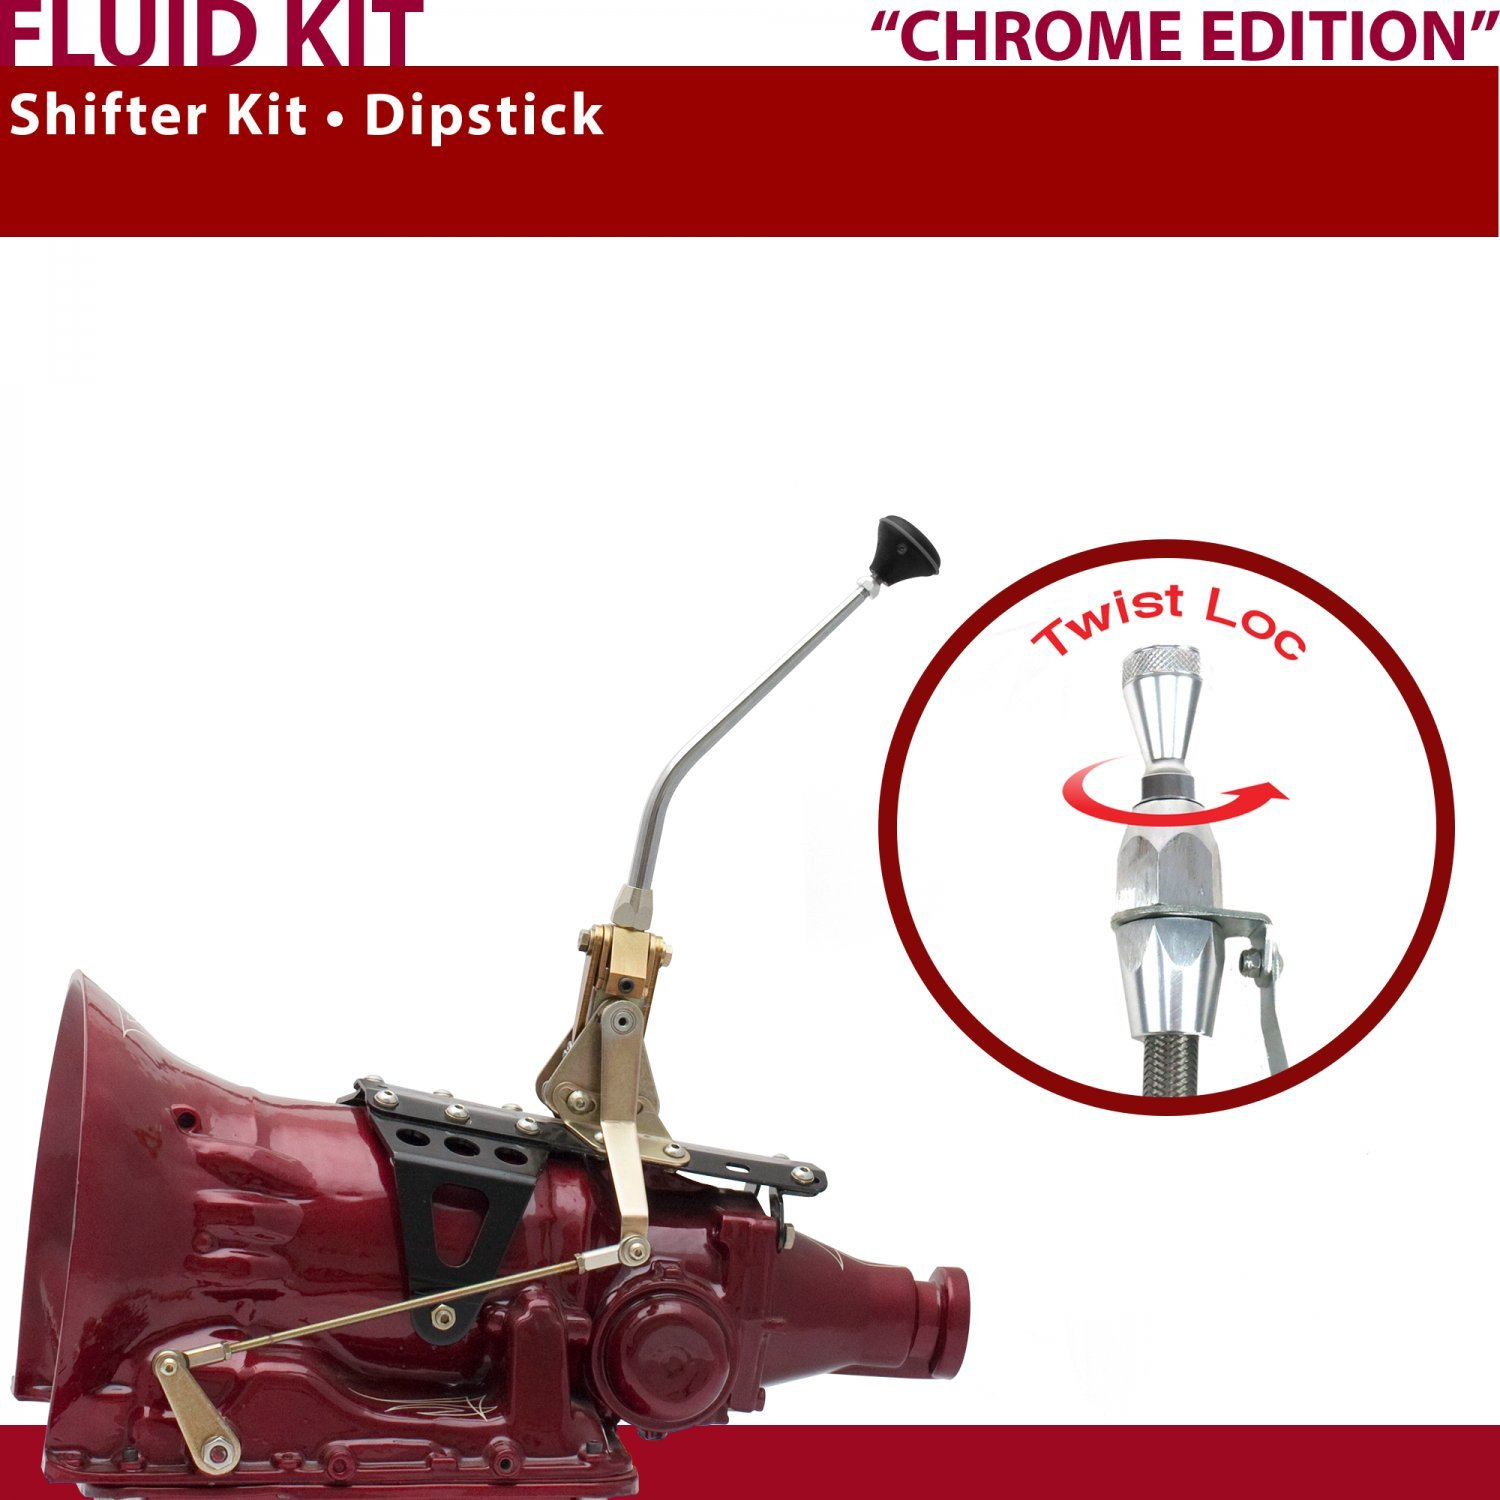 American Shifter 405001 C6 Shifter Kit 10 Dipstick CHR Push Button Ringed Knob For D7292